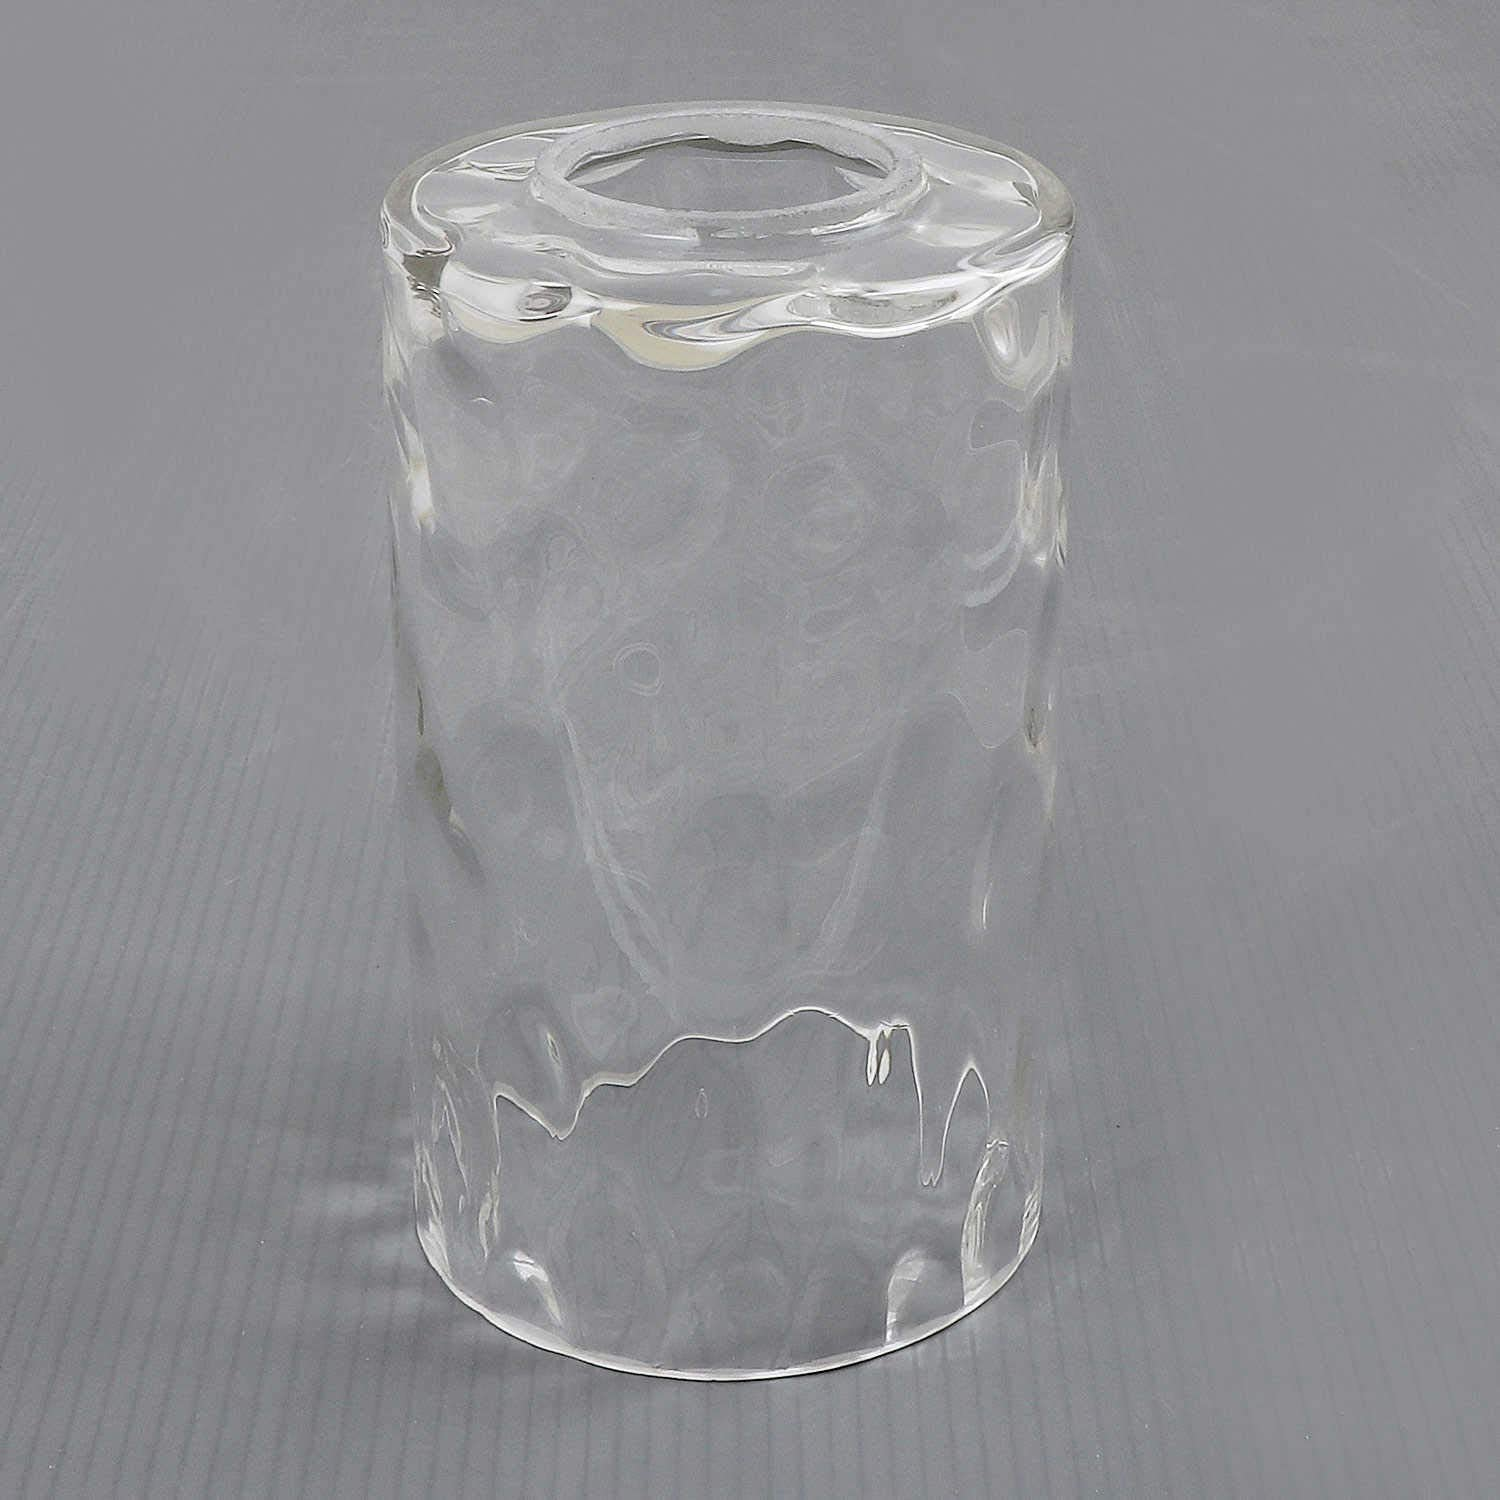 Anmire Water Pattern Style Clear Glass Shade, Accessory Lamp Shade or Fixture Replacement Glass Globe with 1-5/8-Inch Fitter, G0001